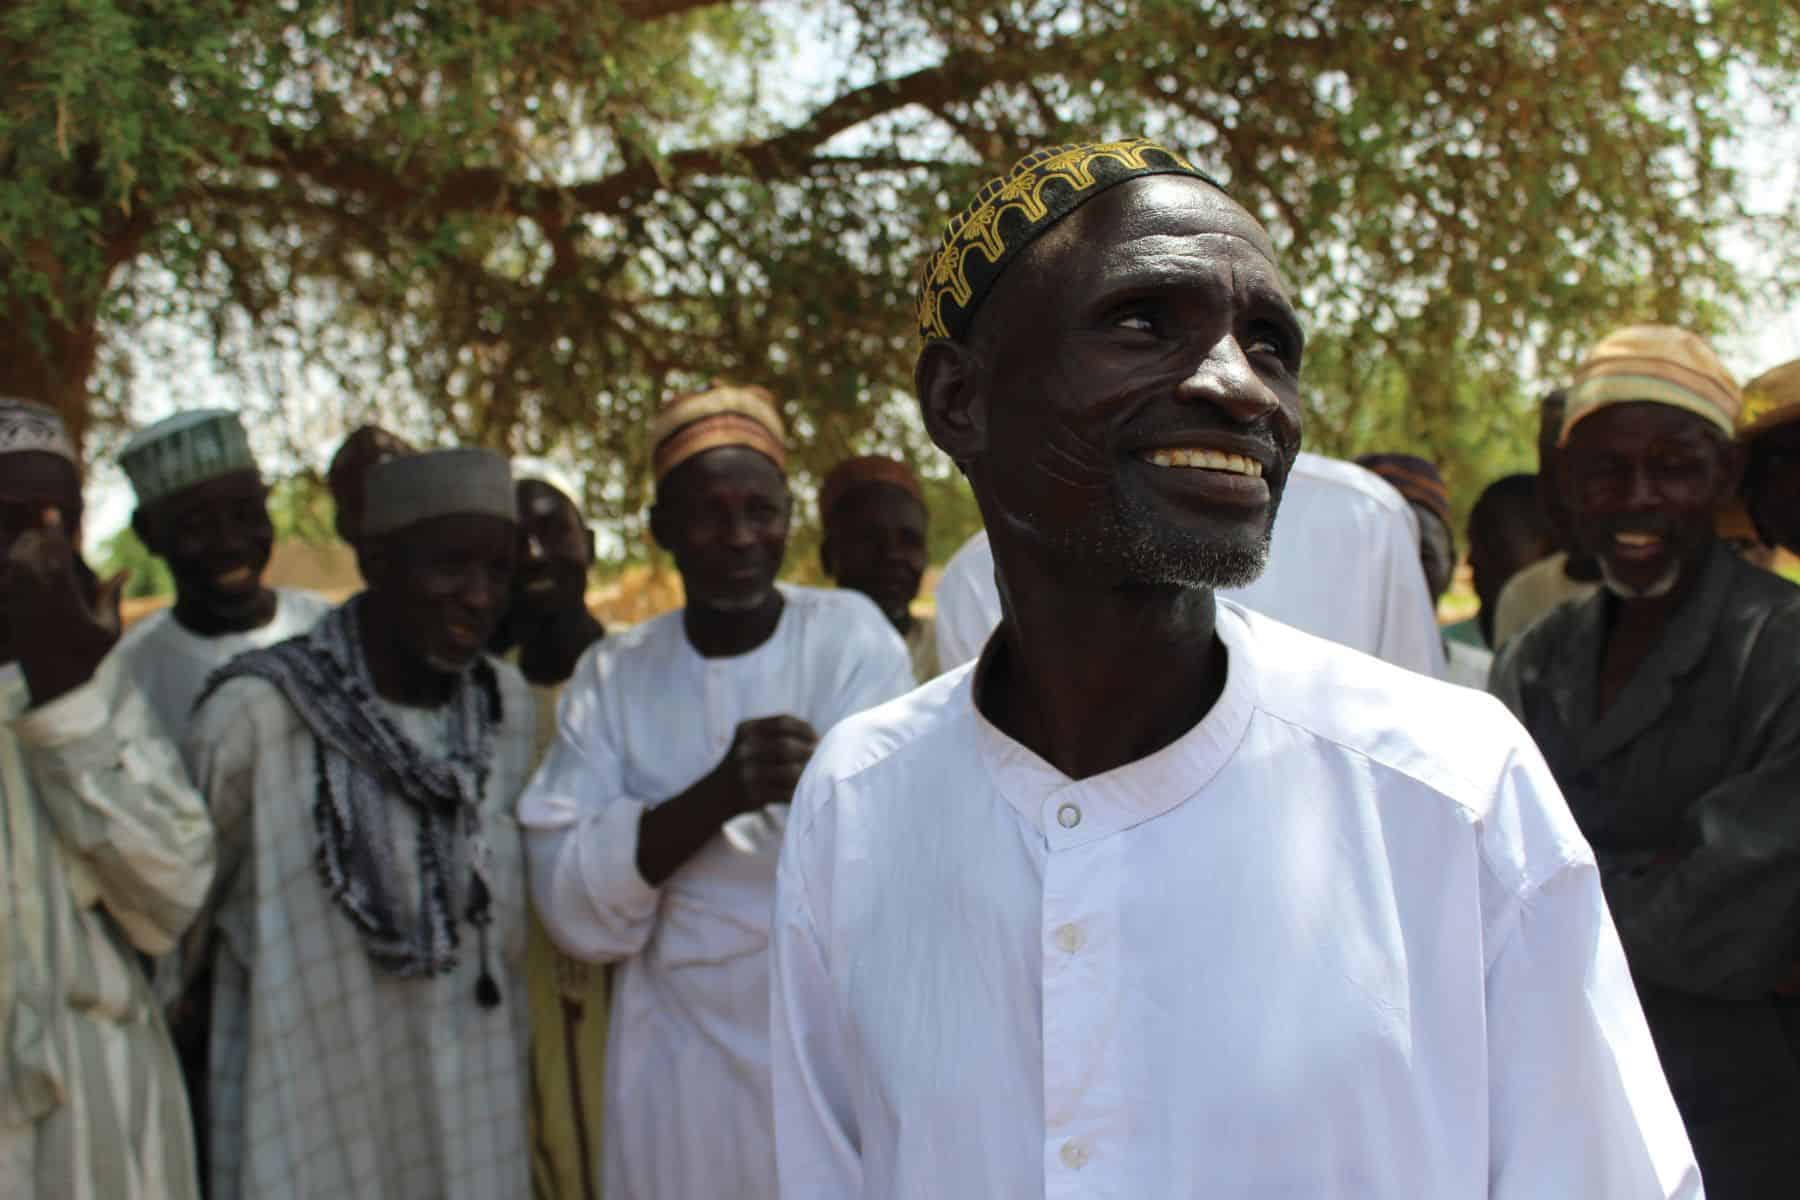 Zakari Yao is filled with joy over the transformed crops in his community.